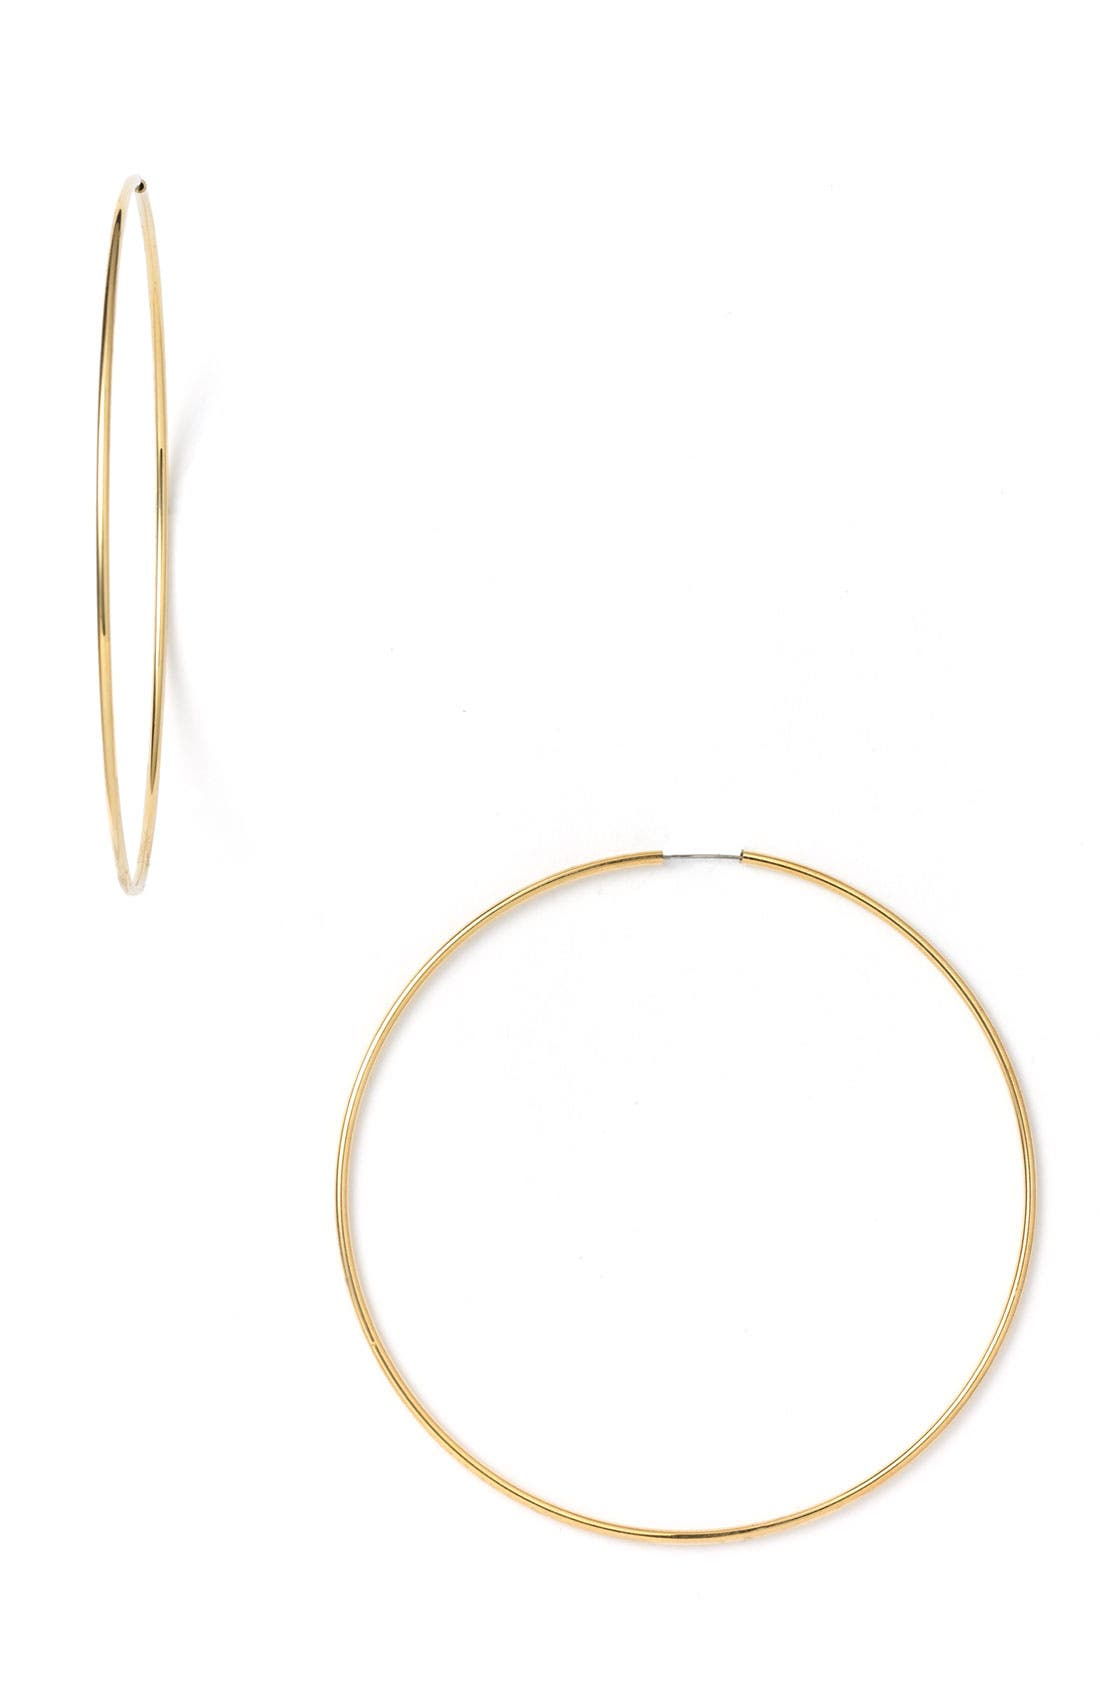 Main Image - Nordstrom Endless Oversized Hoop Earrings